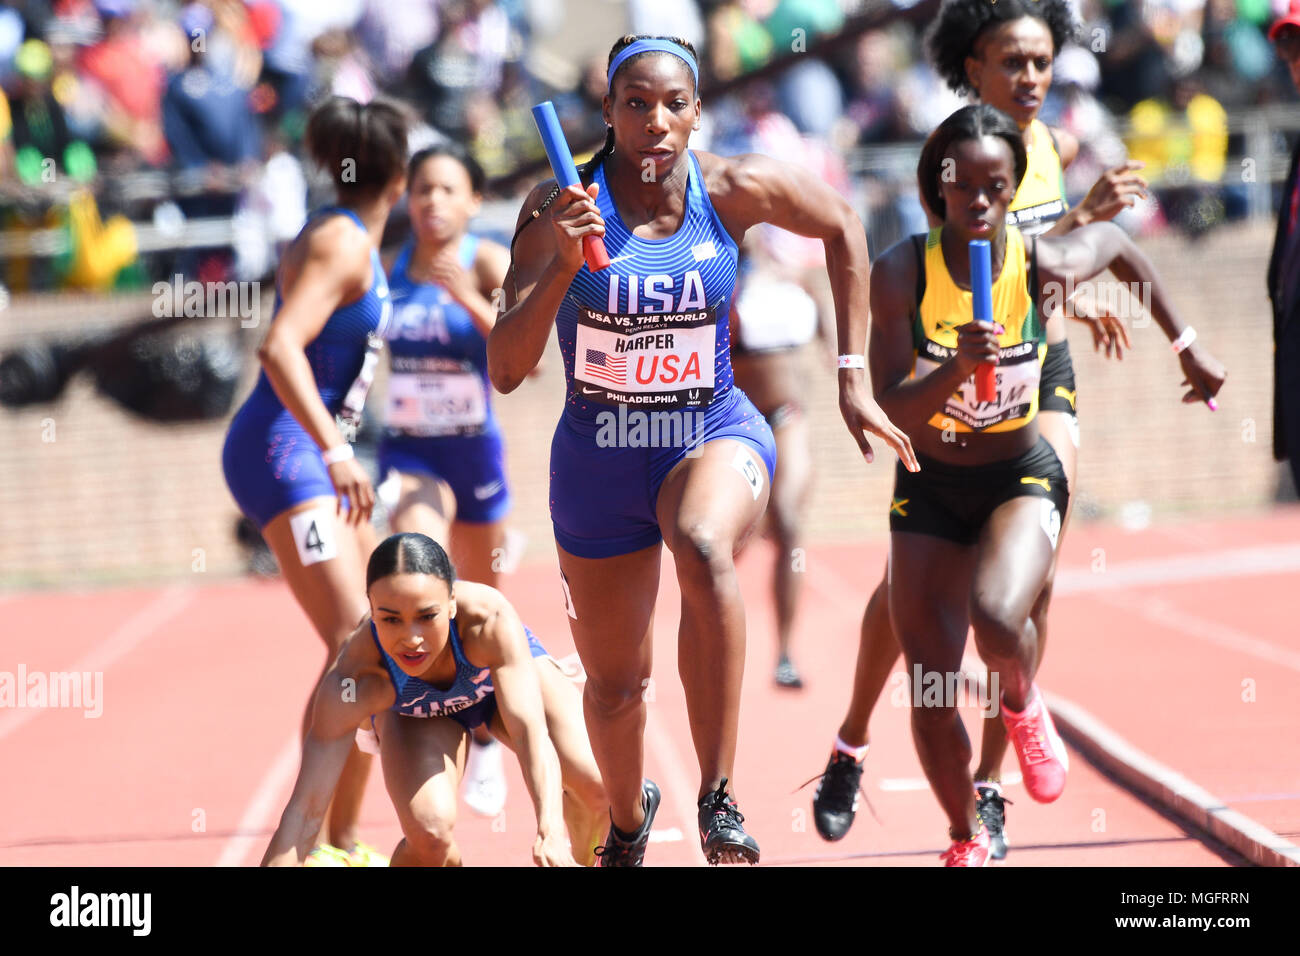 Philadelphia, Pennsylvania, USA. 28th Apr, 2018. KENDRA CHAMBERS of the USA falls as she passes the baton to DAINA HARPER, during the USA vs The World Women 4x400 at the 124th running of the Penn Relays in Philadelphia Pennsylvania Credit: Ricky Fitchett/ZUMA Wire/Alamy Live News - Stock Image